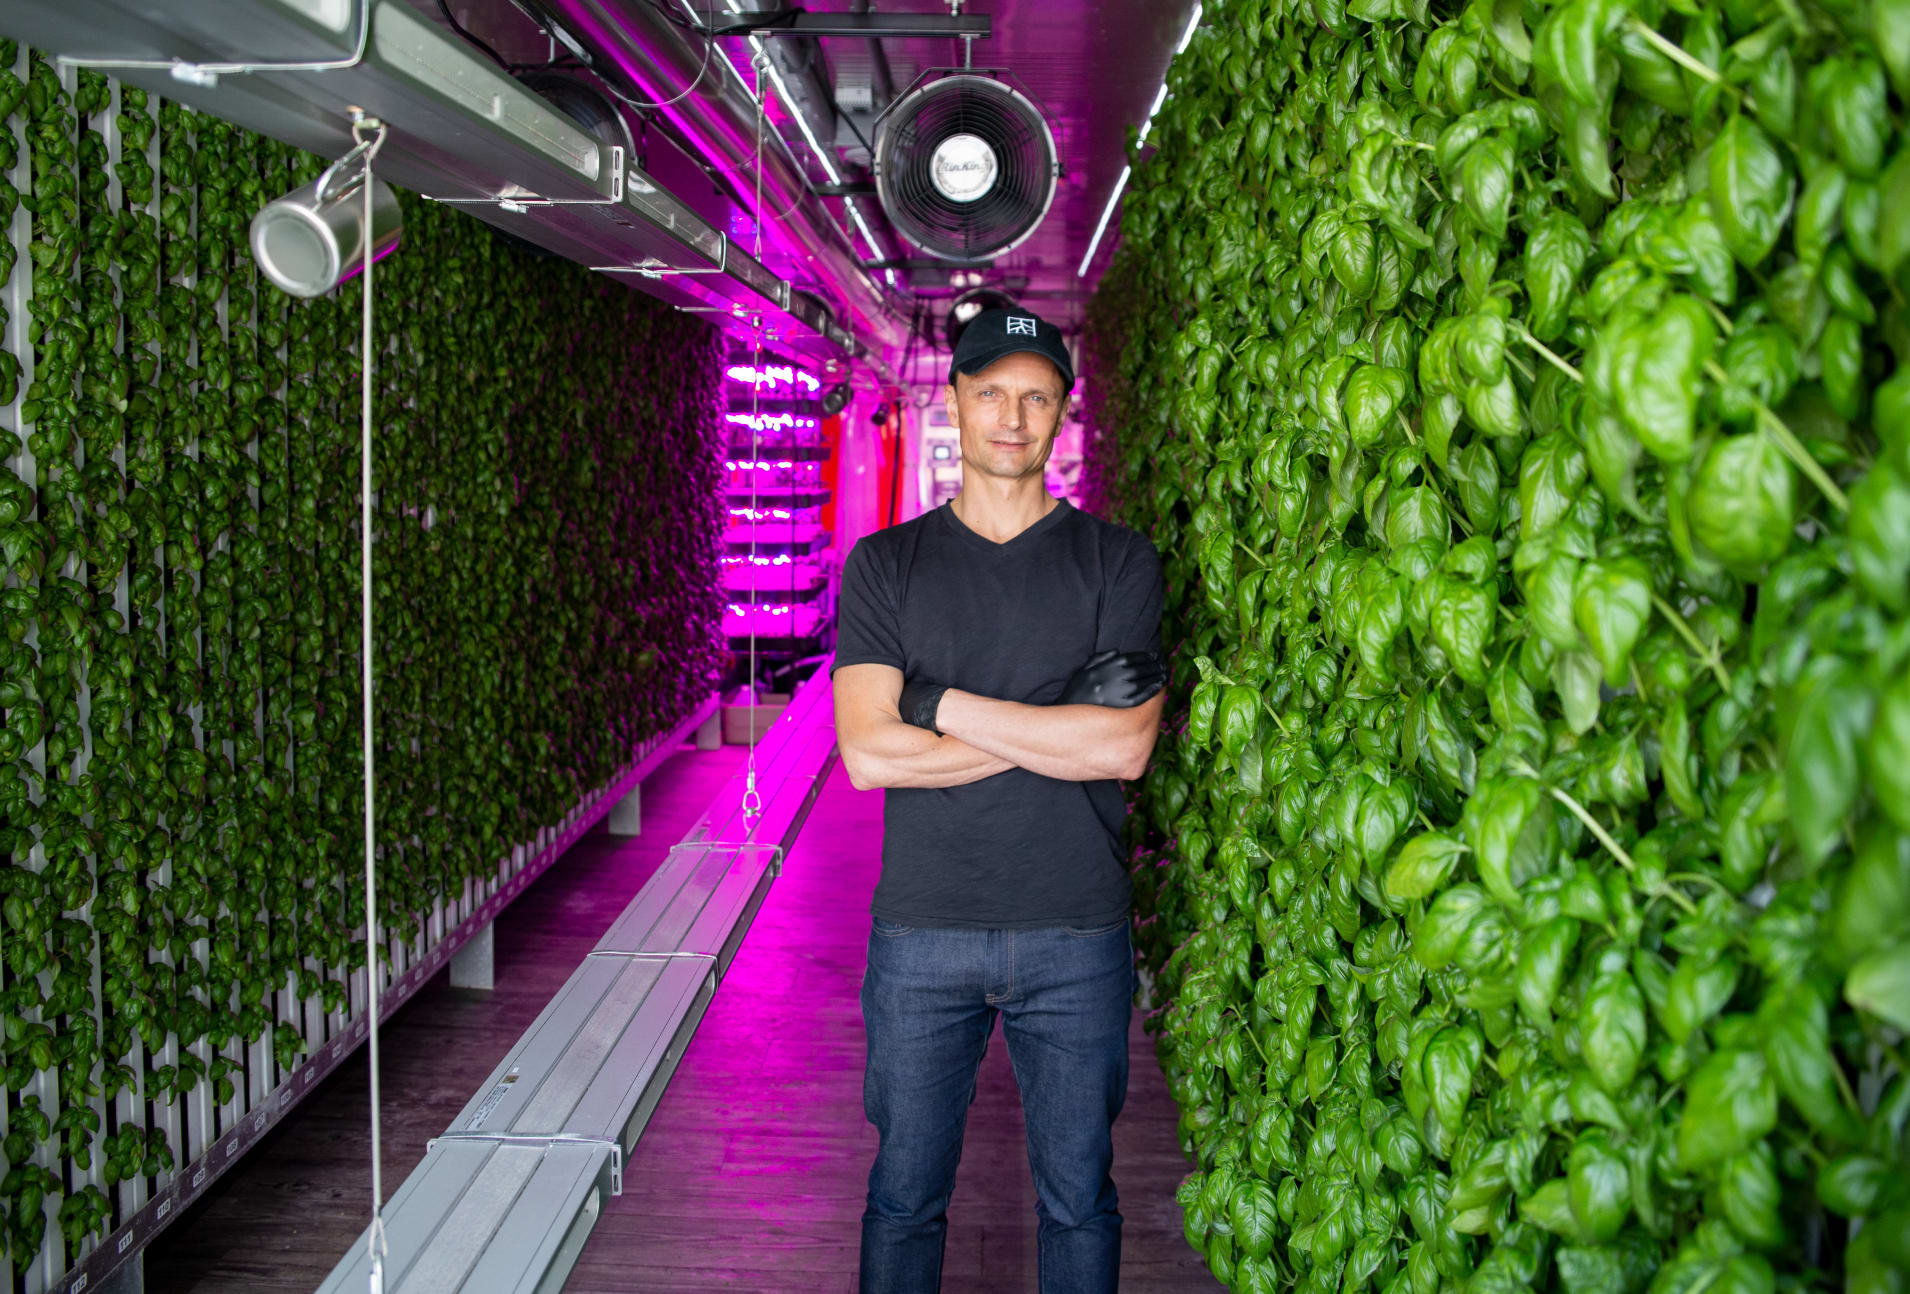 this photo shows Tobias Peggs, who cofounded Square Roots with Kimbal Musk